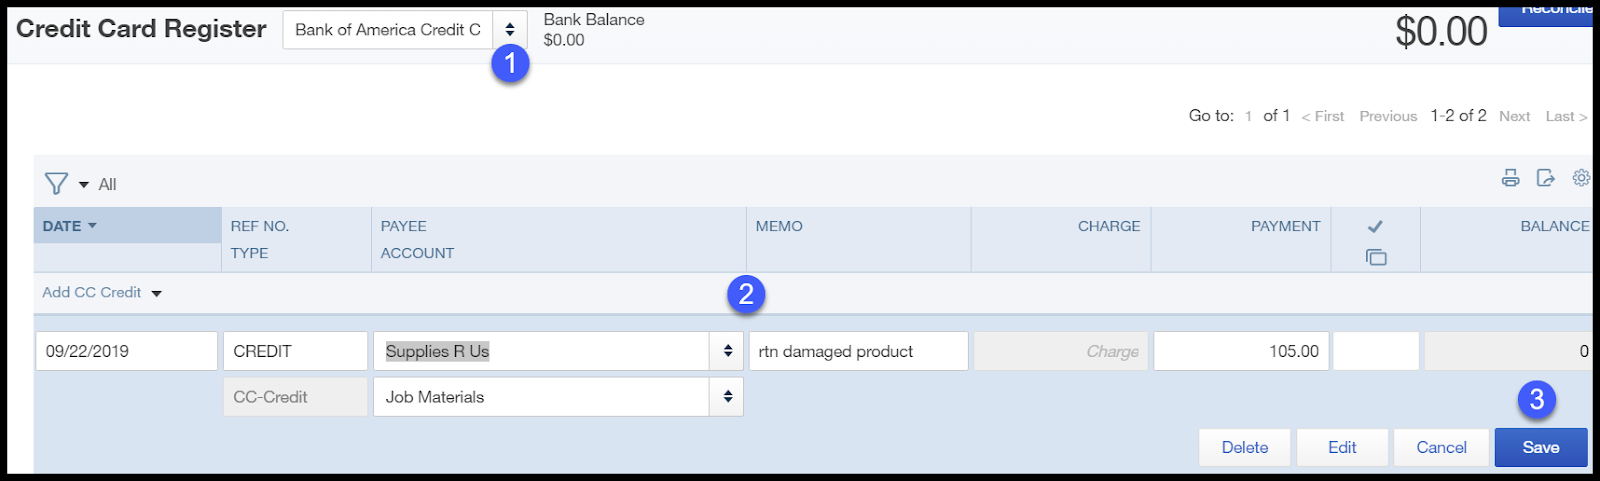 How to Enter a Credit Card Refund in QuickBooks Online